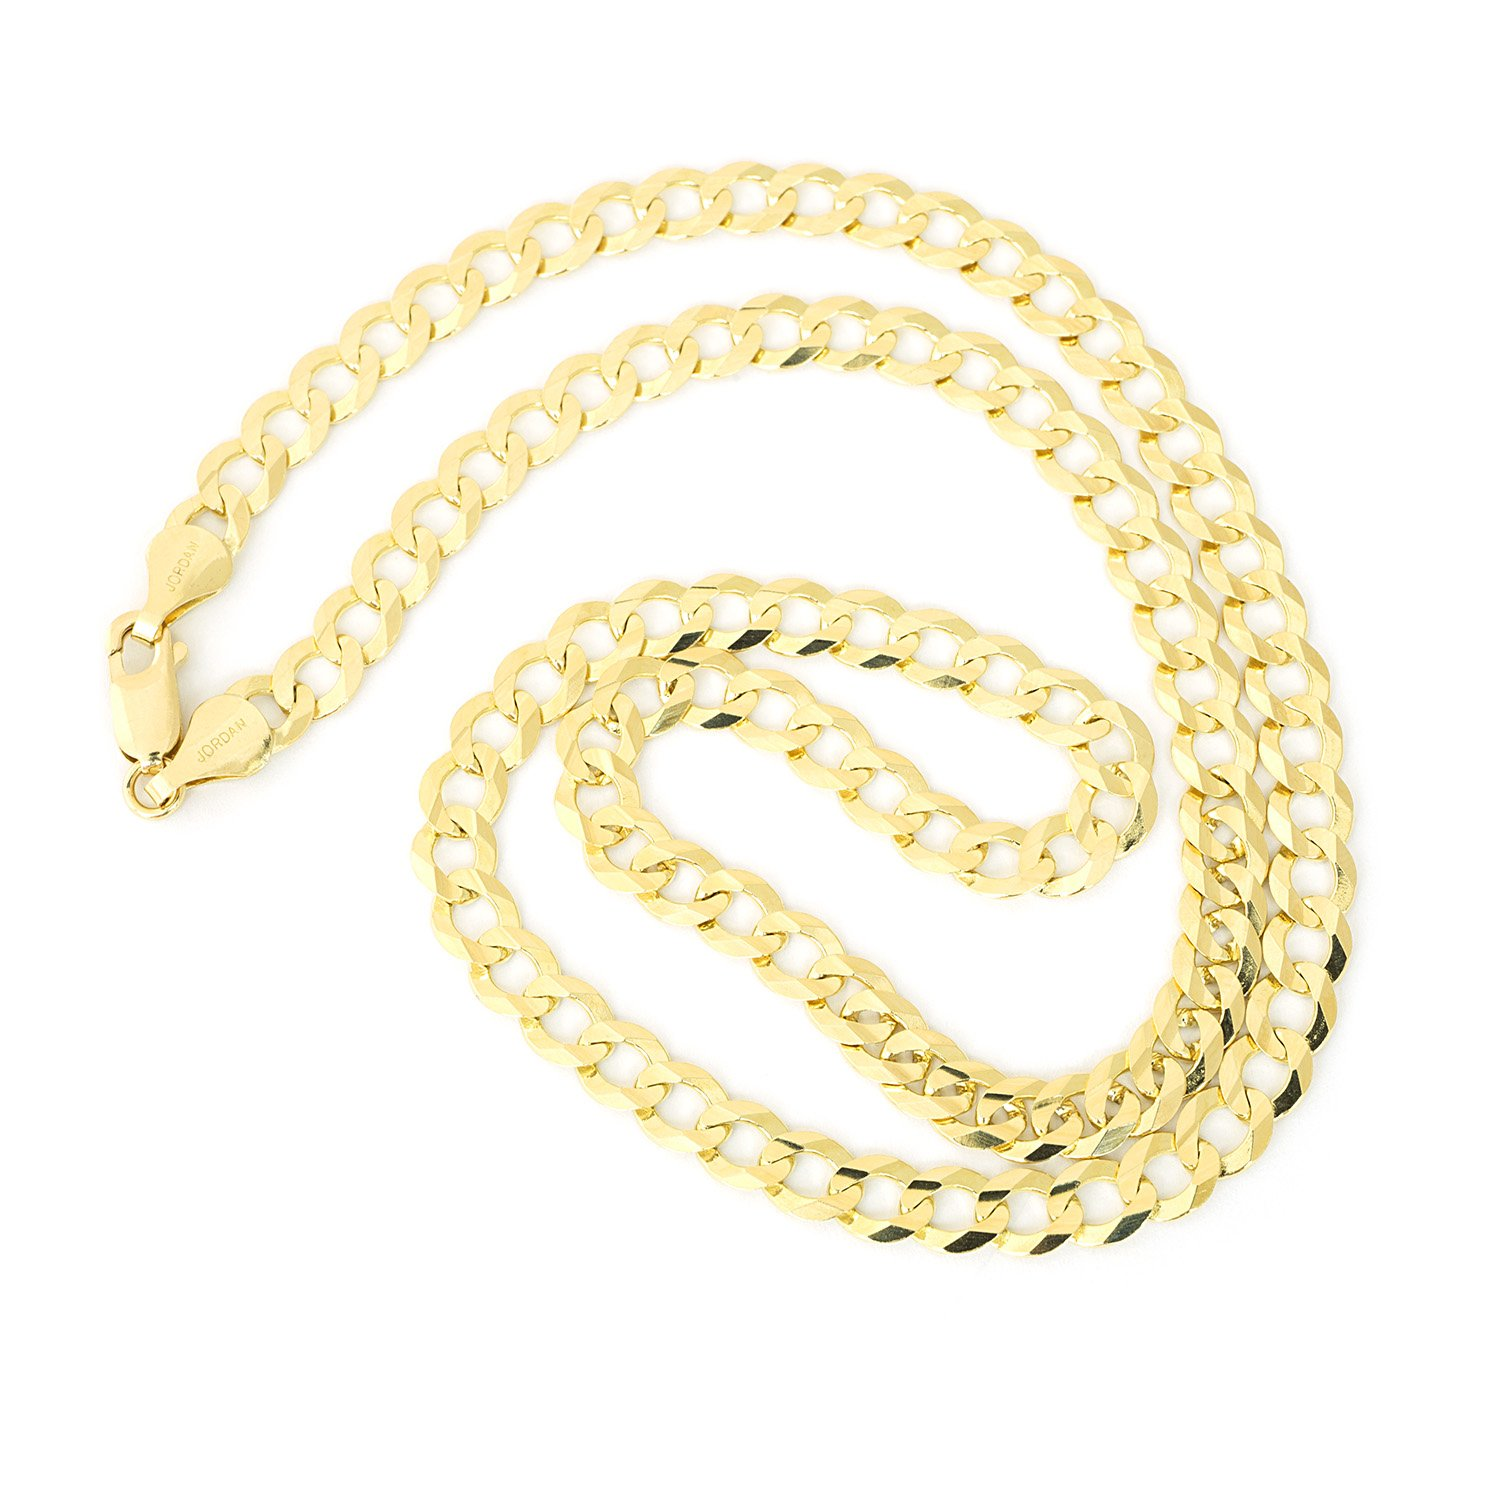 Men's Solid 14k Yellow Gold Comfort Cuban Curb 5.7mm Chain Necklace, 22''